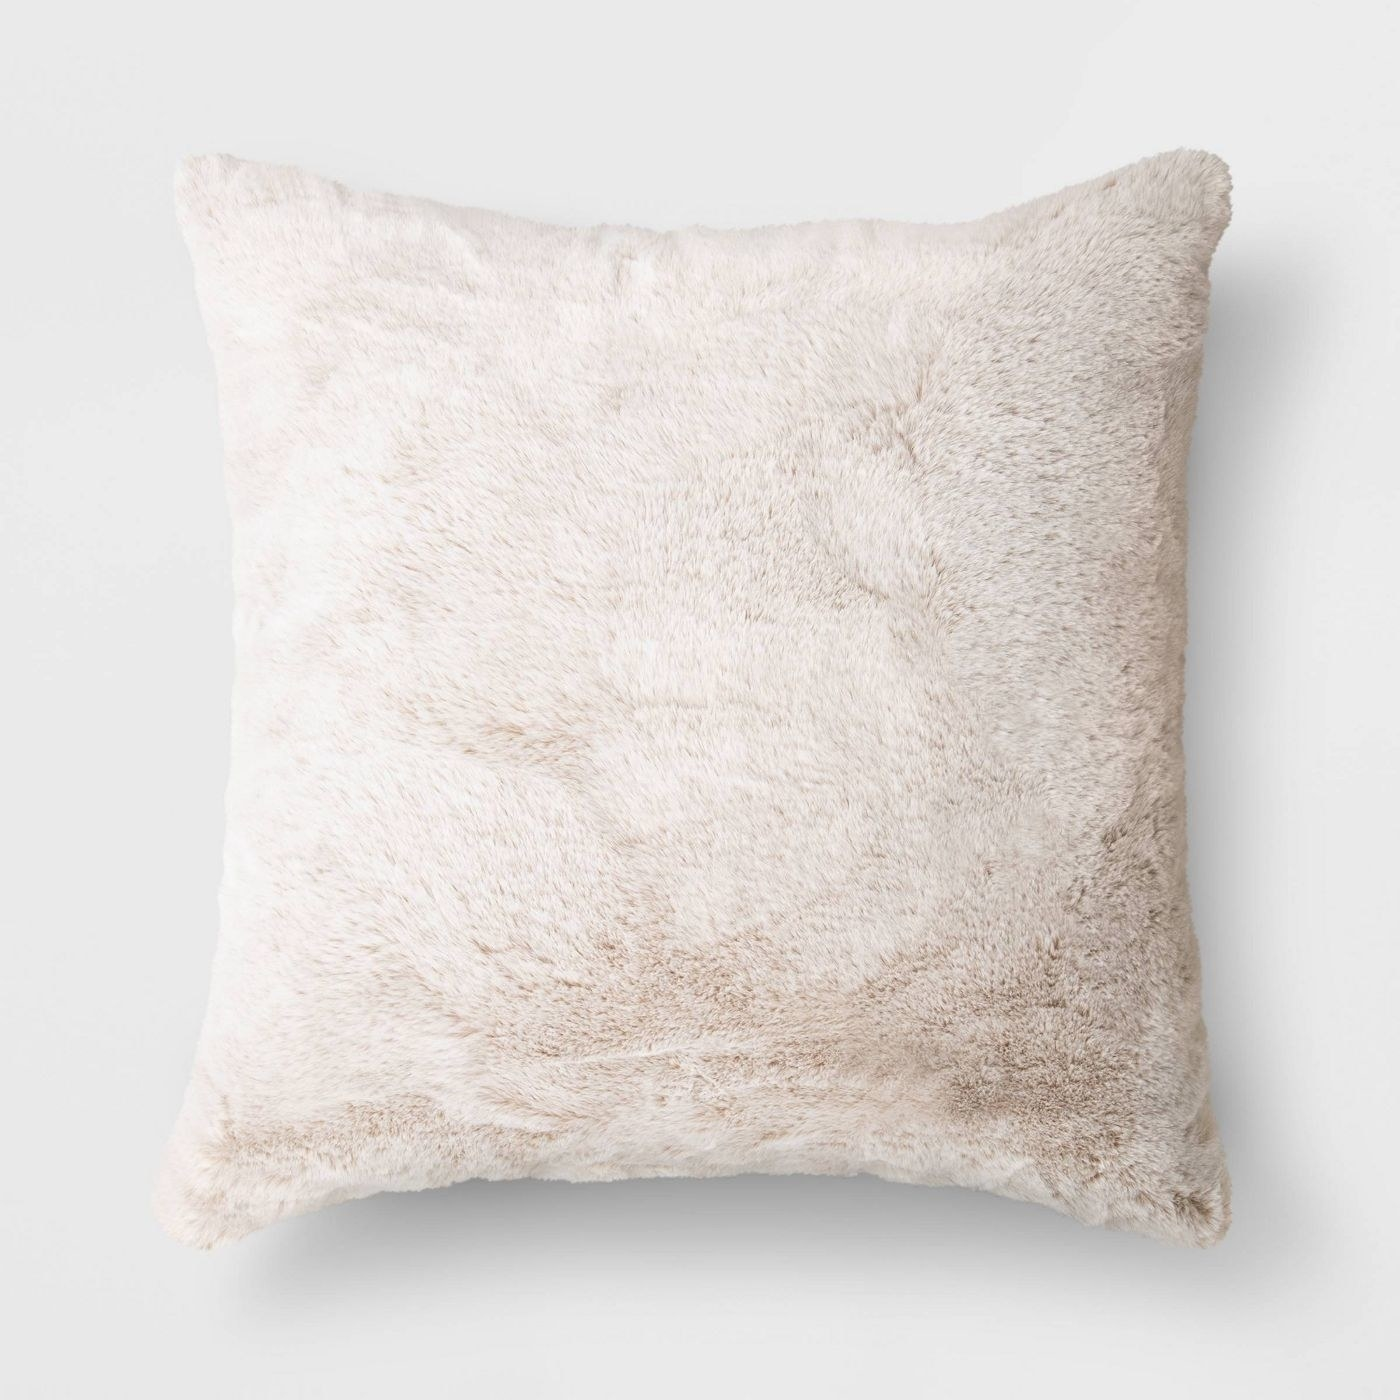 A neutral faux fur throw pillow